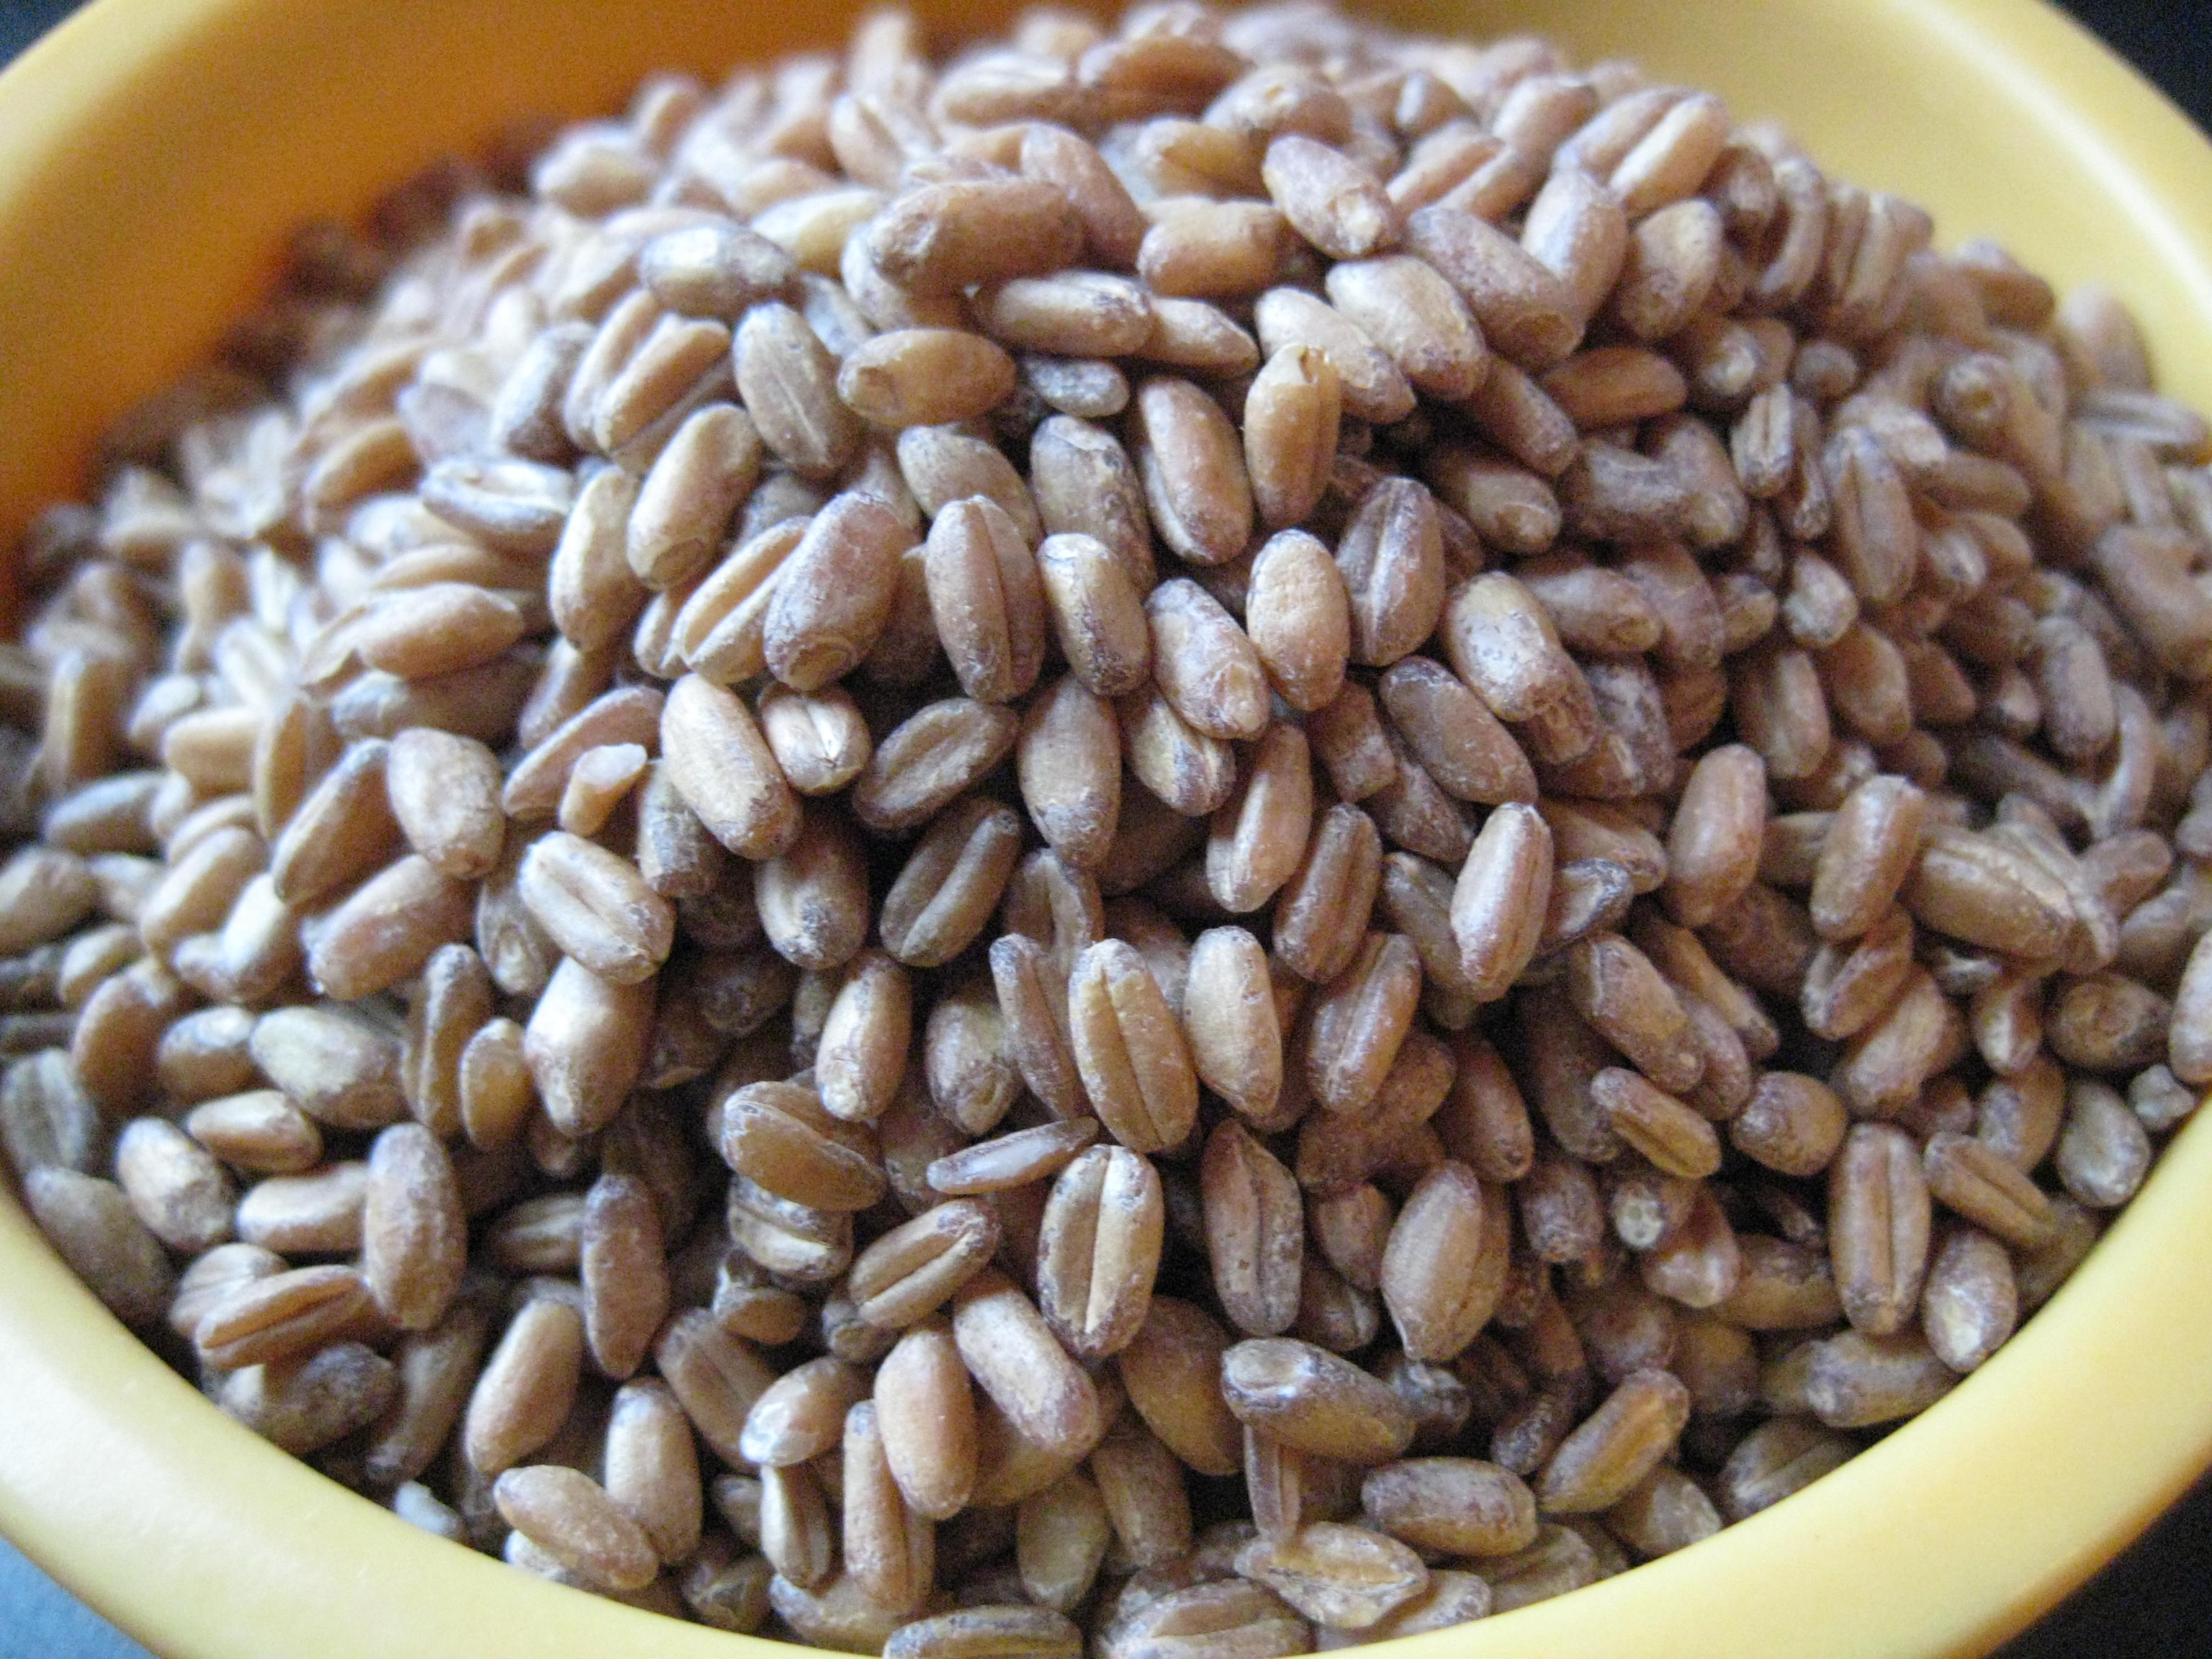 Uncooked Wheat Berries